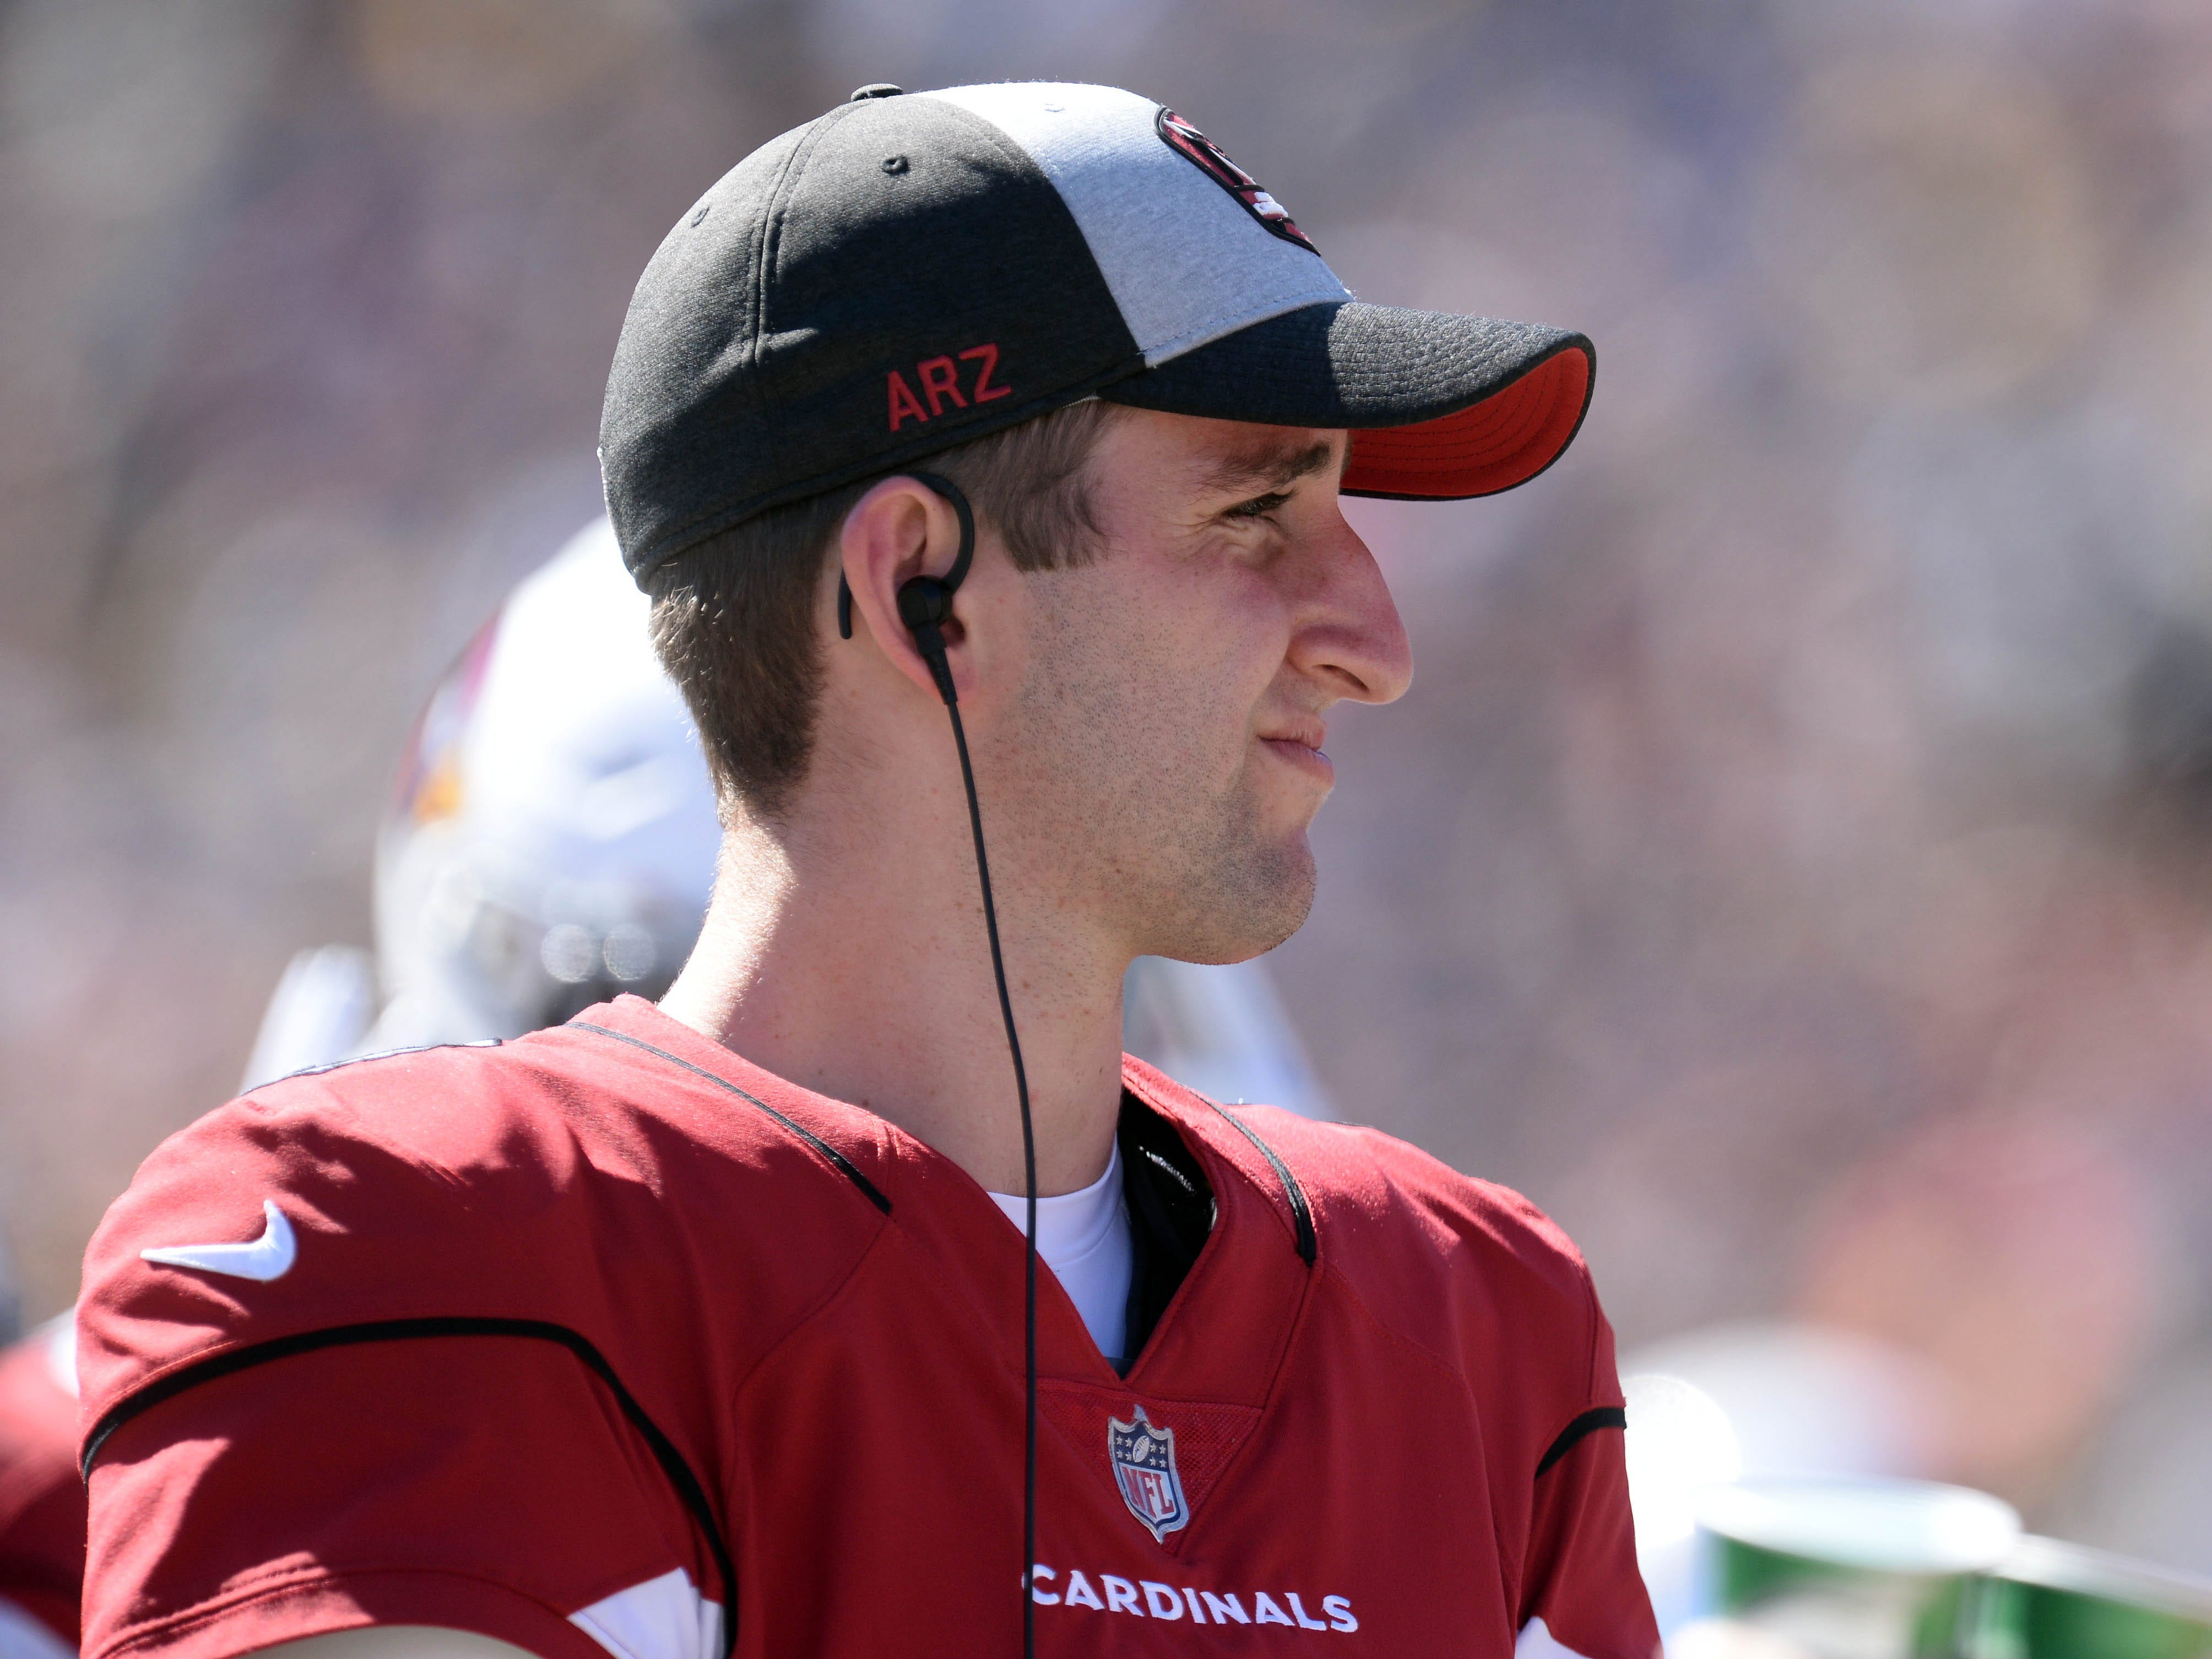 September 16, 2018; Los Angeles, CA, USA; Arizona Cardinals quarterback Josh Rosen (3) during the second half as the Cardinals play against the Los Angeles Rams at the Los Angeles Memorial Coliseum. Mandatory Credit: Gary A. Vasquez-USA TODAY Sports